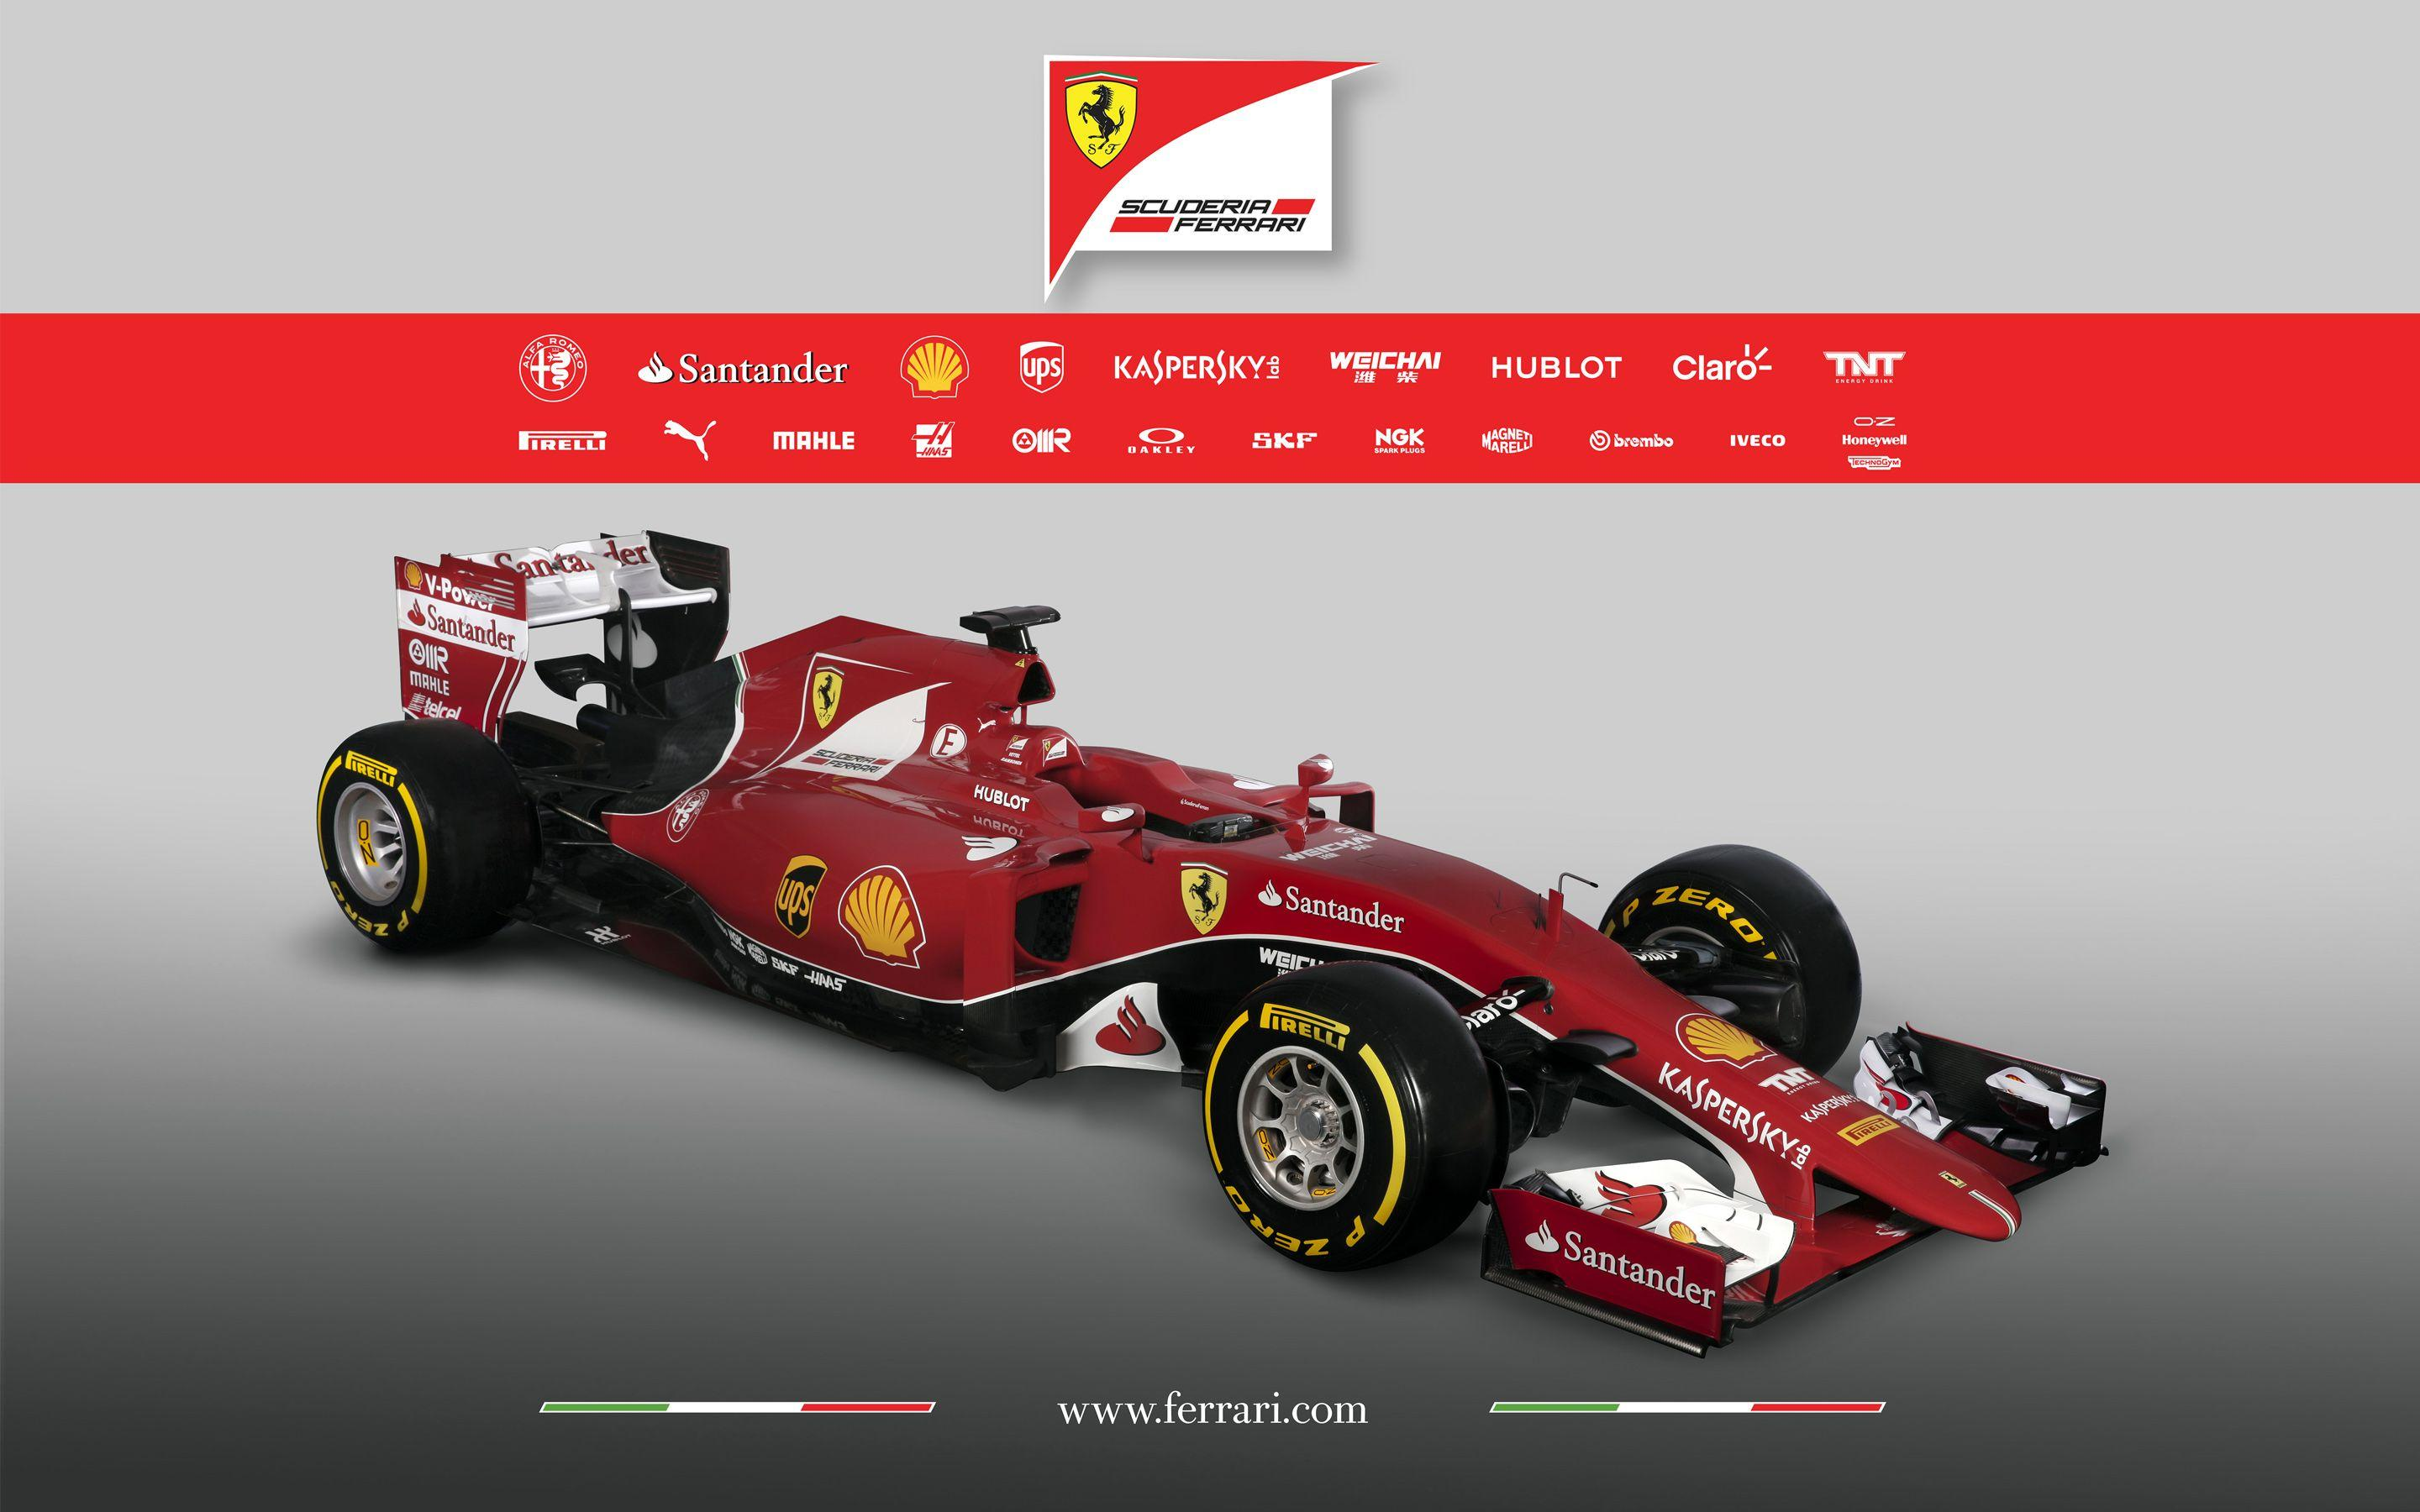 Scuderia Ferrari Wallpapers Wallpaper Cave